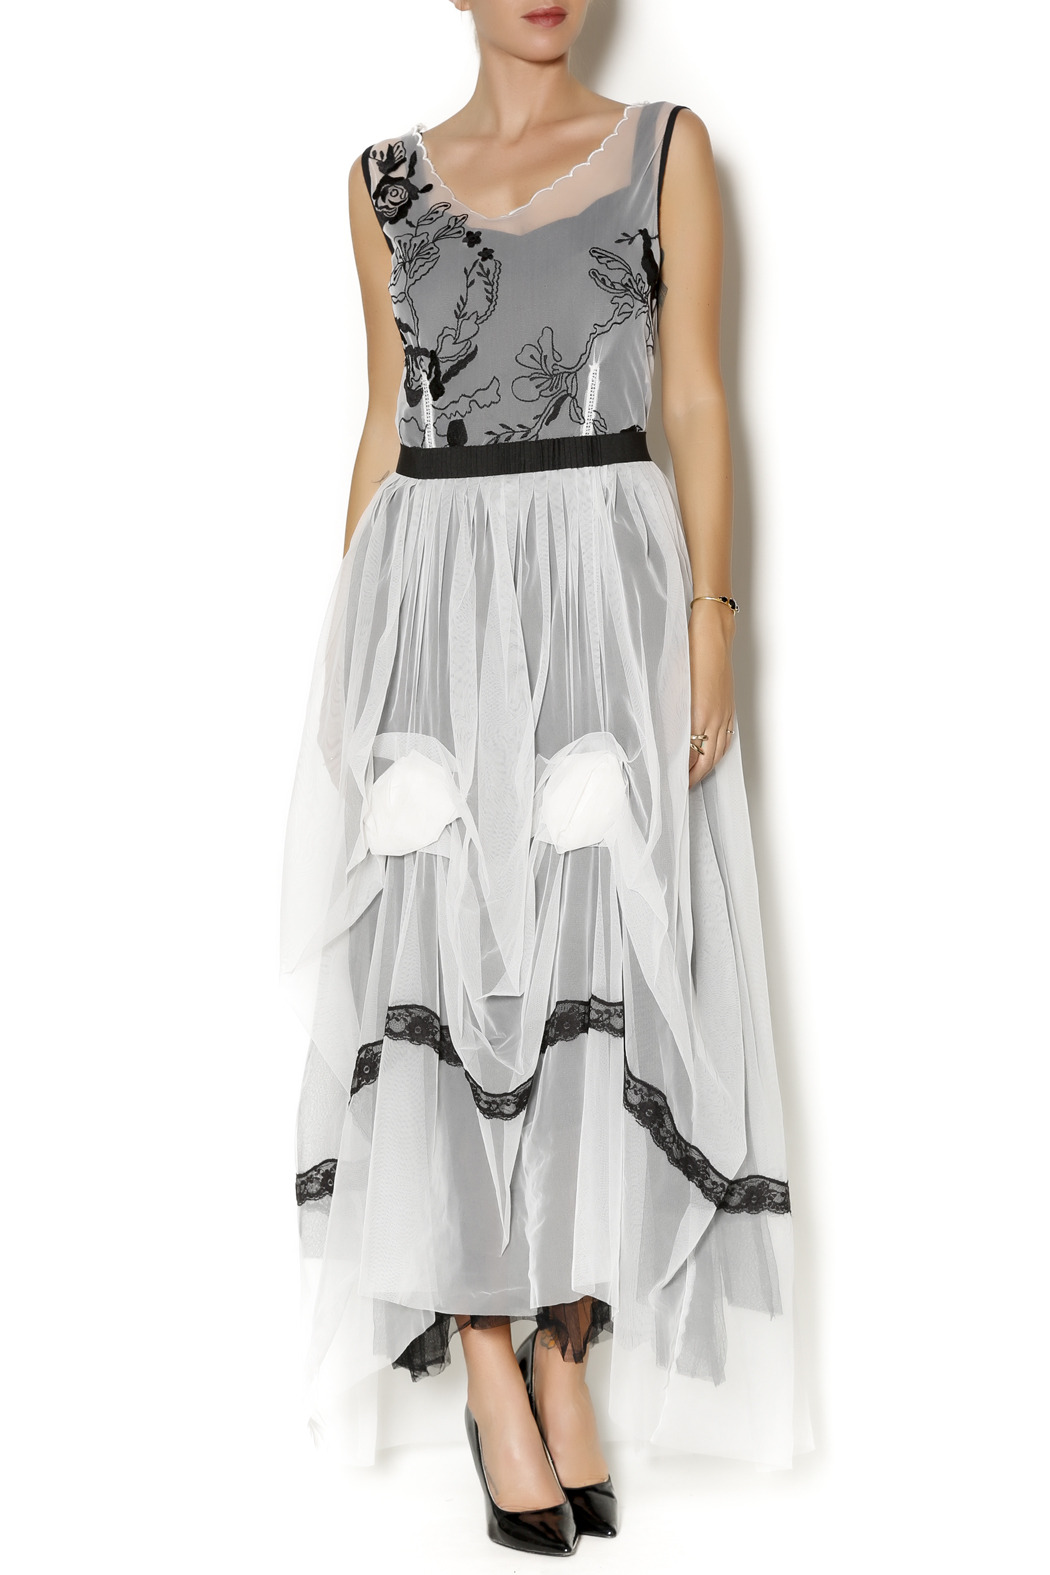 NATAYA Nataya Ethereal Gown from Florida by Mad Hatter General Store ...